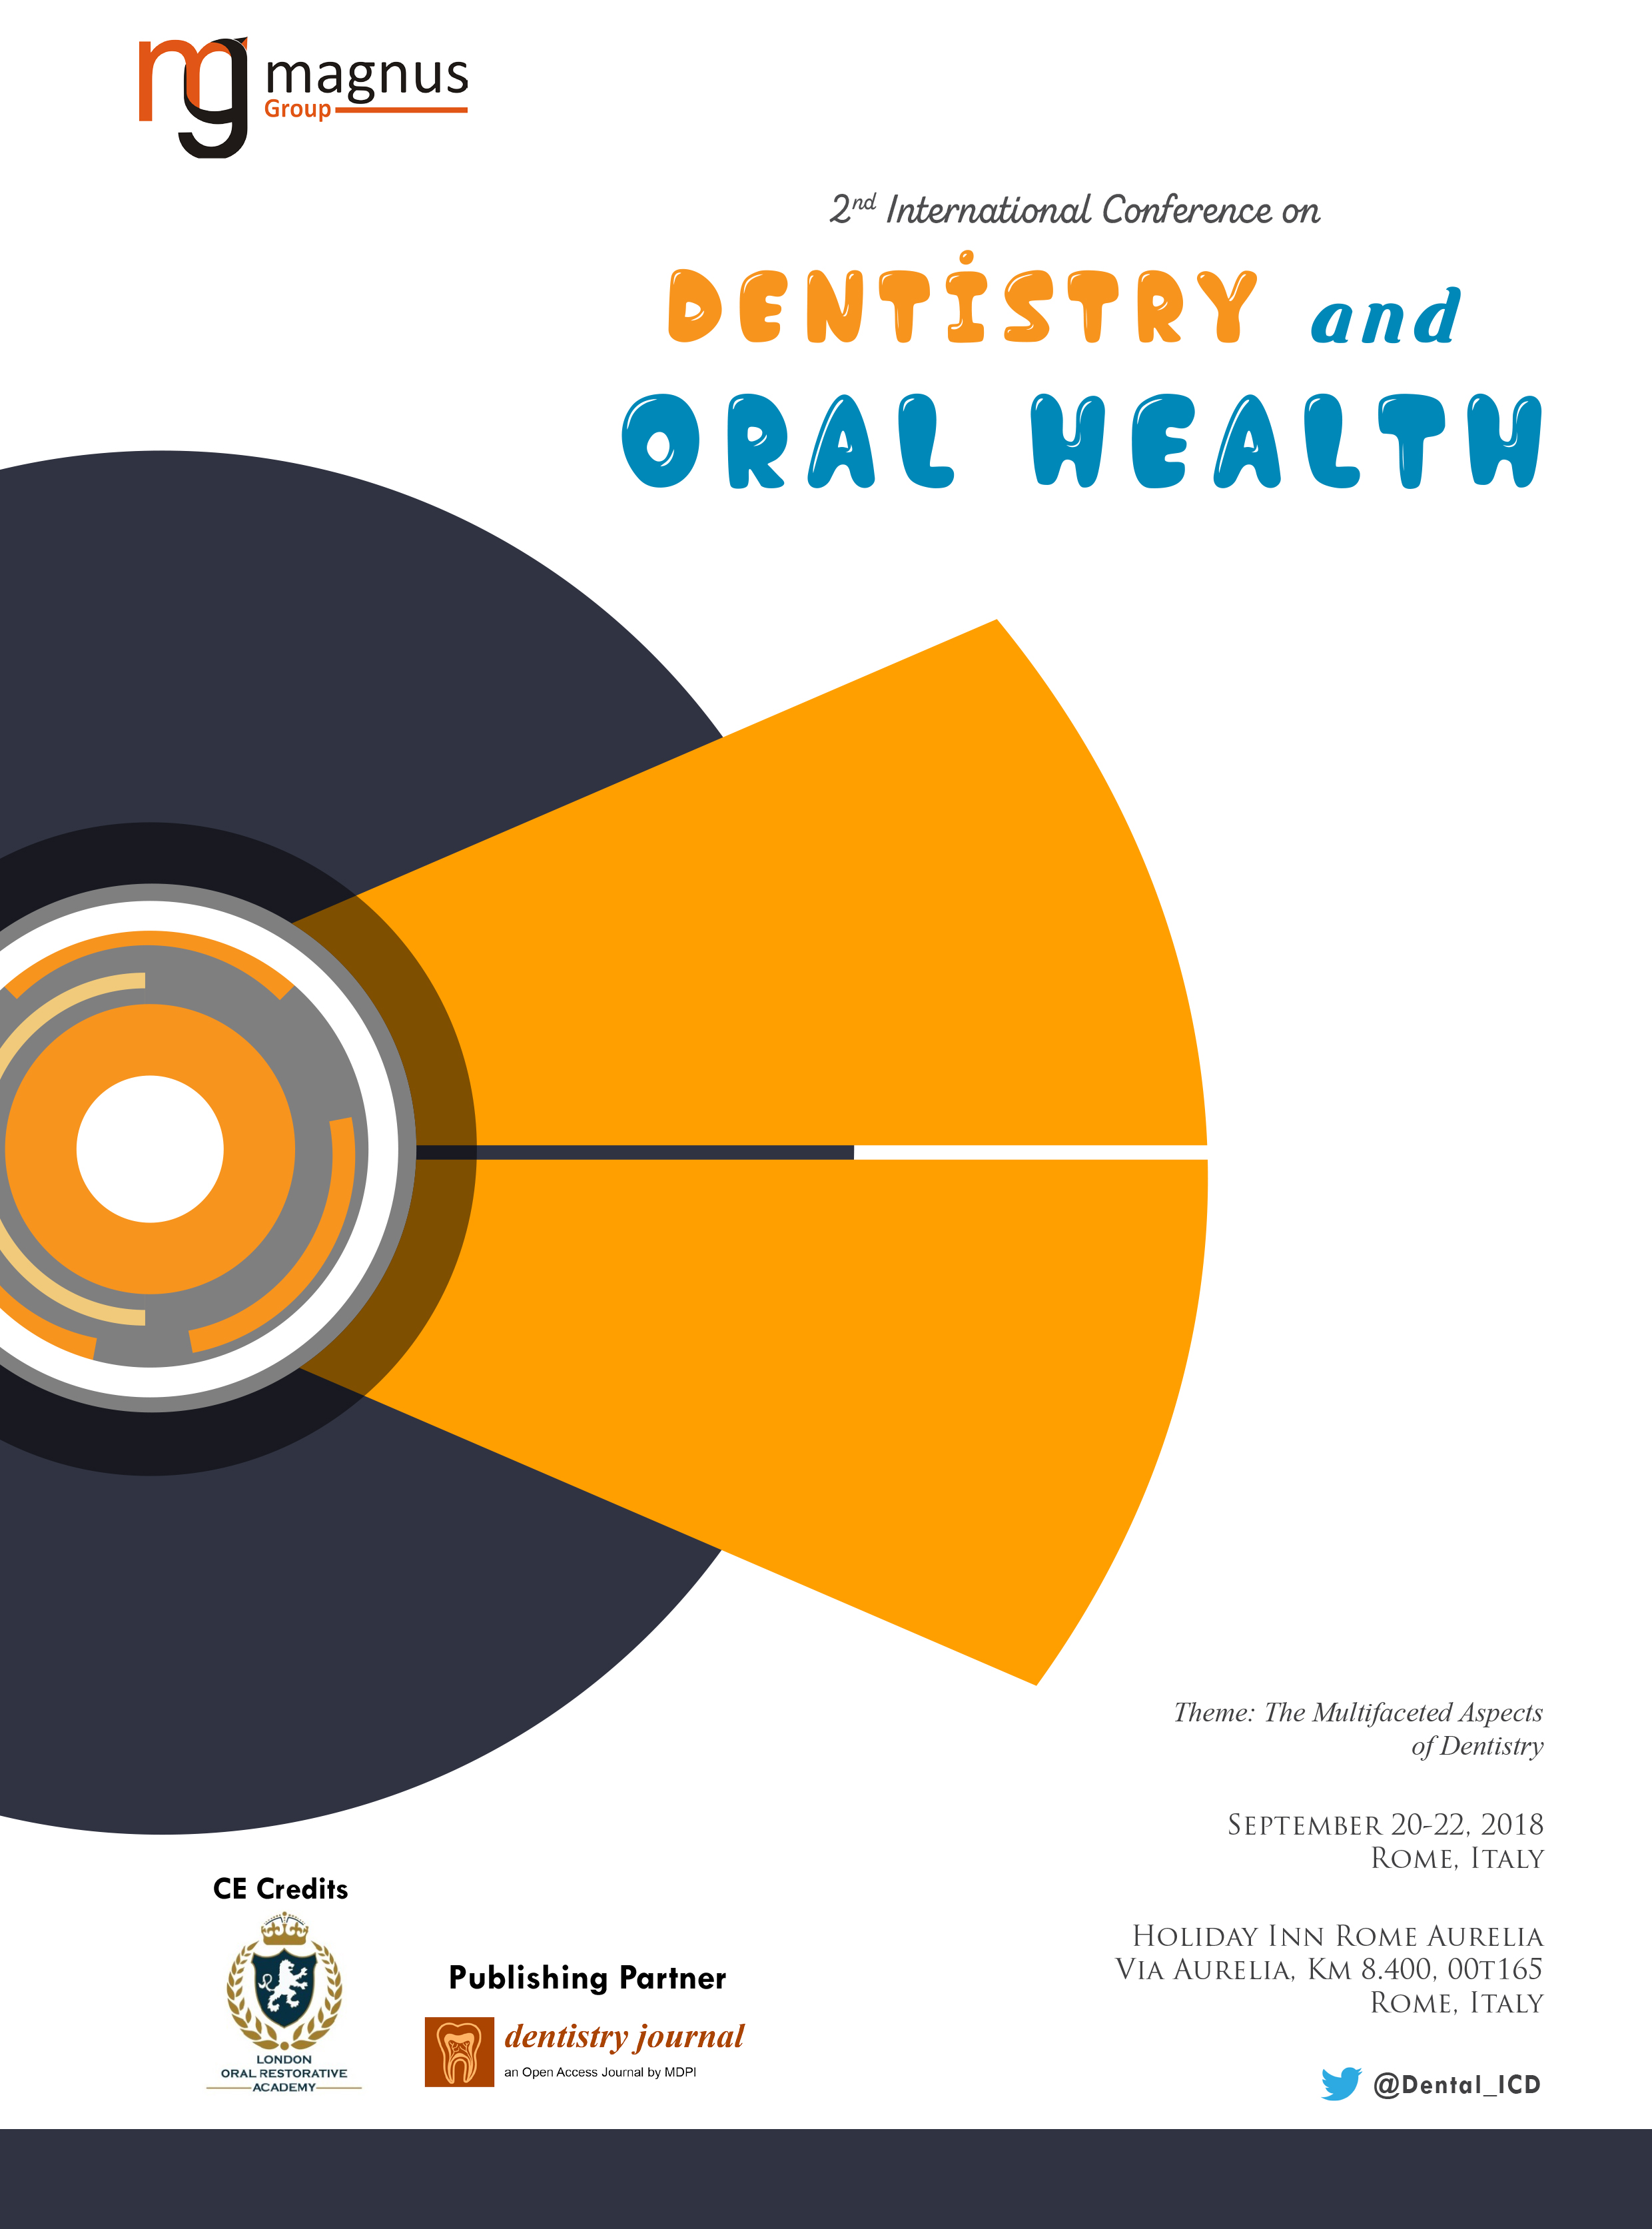 2nd Edition of International Conference on Dentistry and Oral Health Book